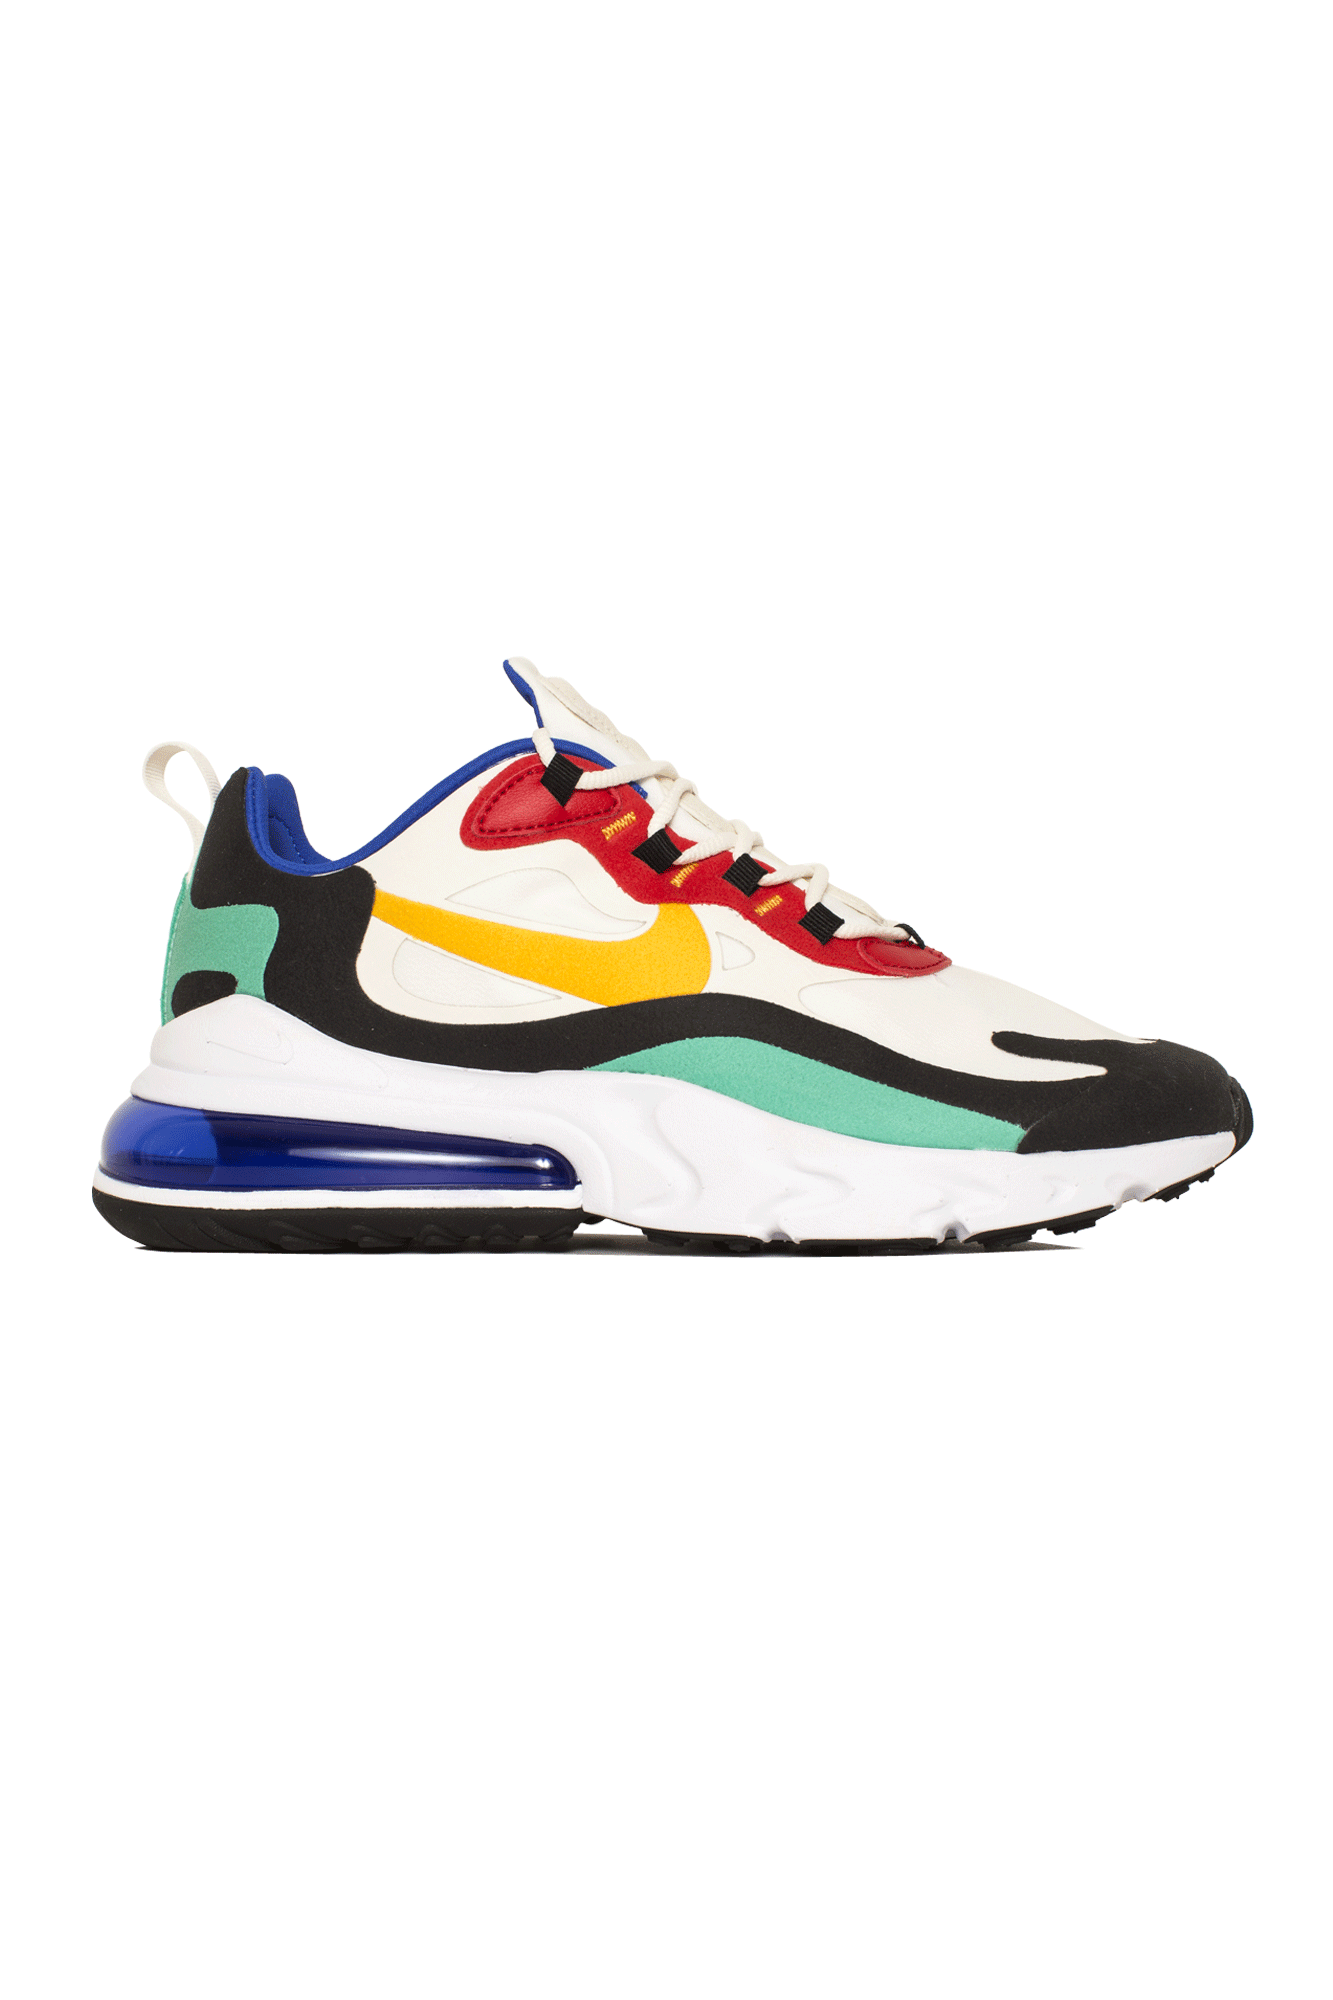 Nike Sneakers AIR MAX 270 REACT White AO4971-#000#002#4 - One Block Down